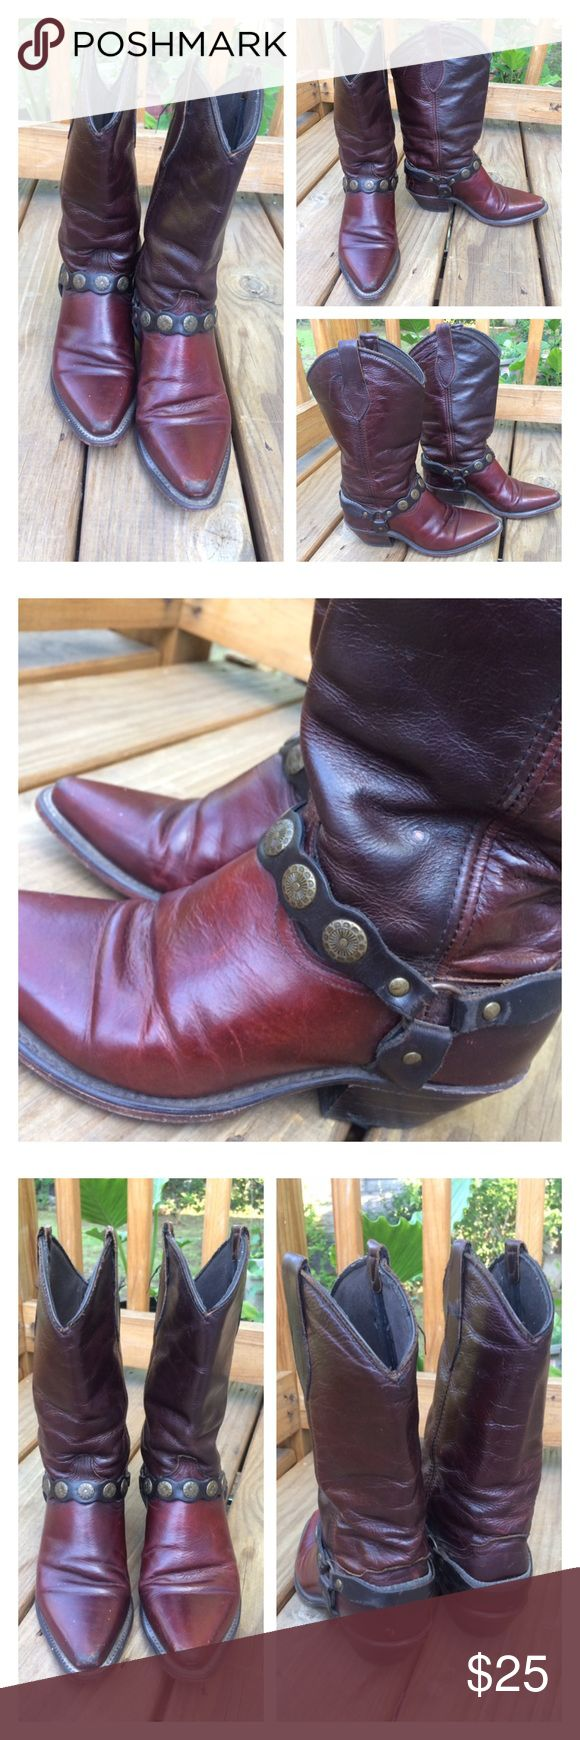 """Vintage Indian Red Leather Belted Cowboy Boots fits size 7 up to 7.5 - hard to read the size. Approx 2"""" heel. Worn to perfection please see all photos Vintage Shoes Heeled Boots"""